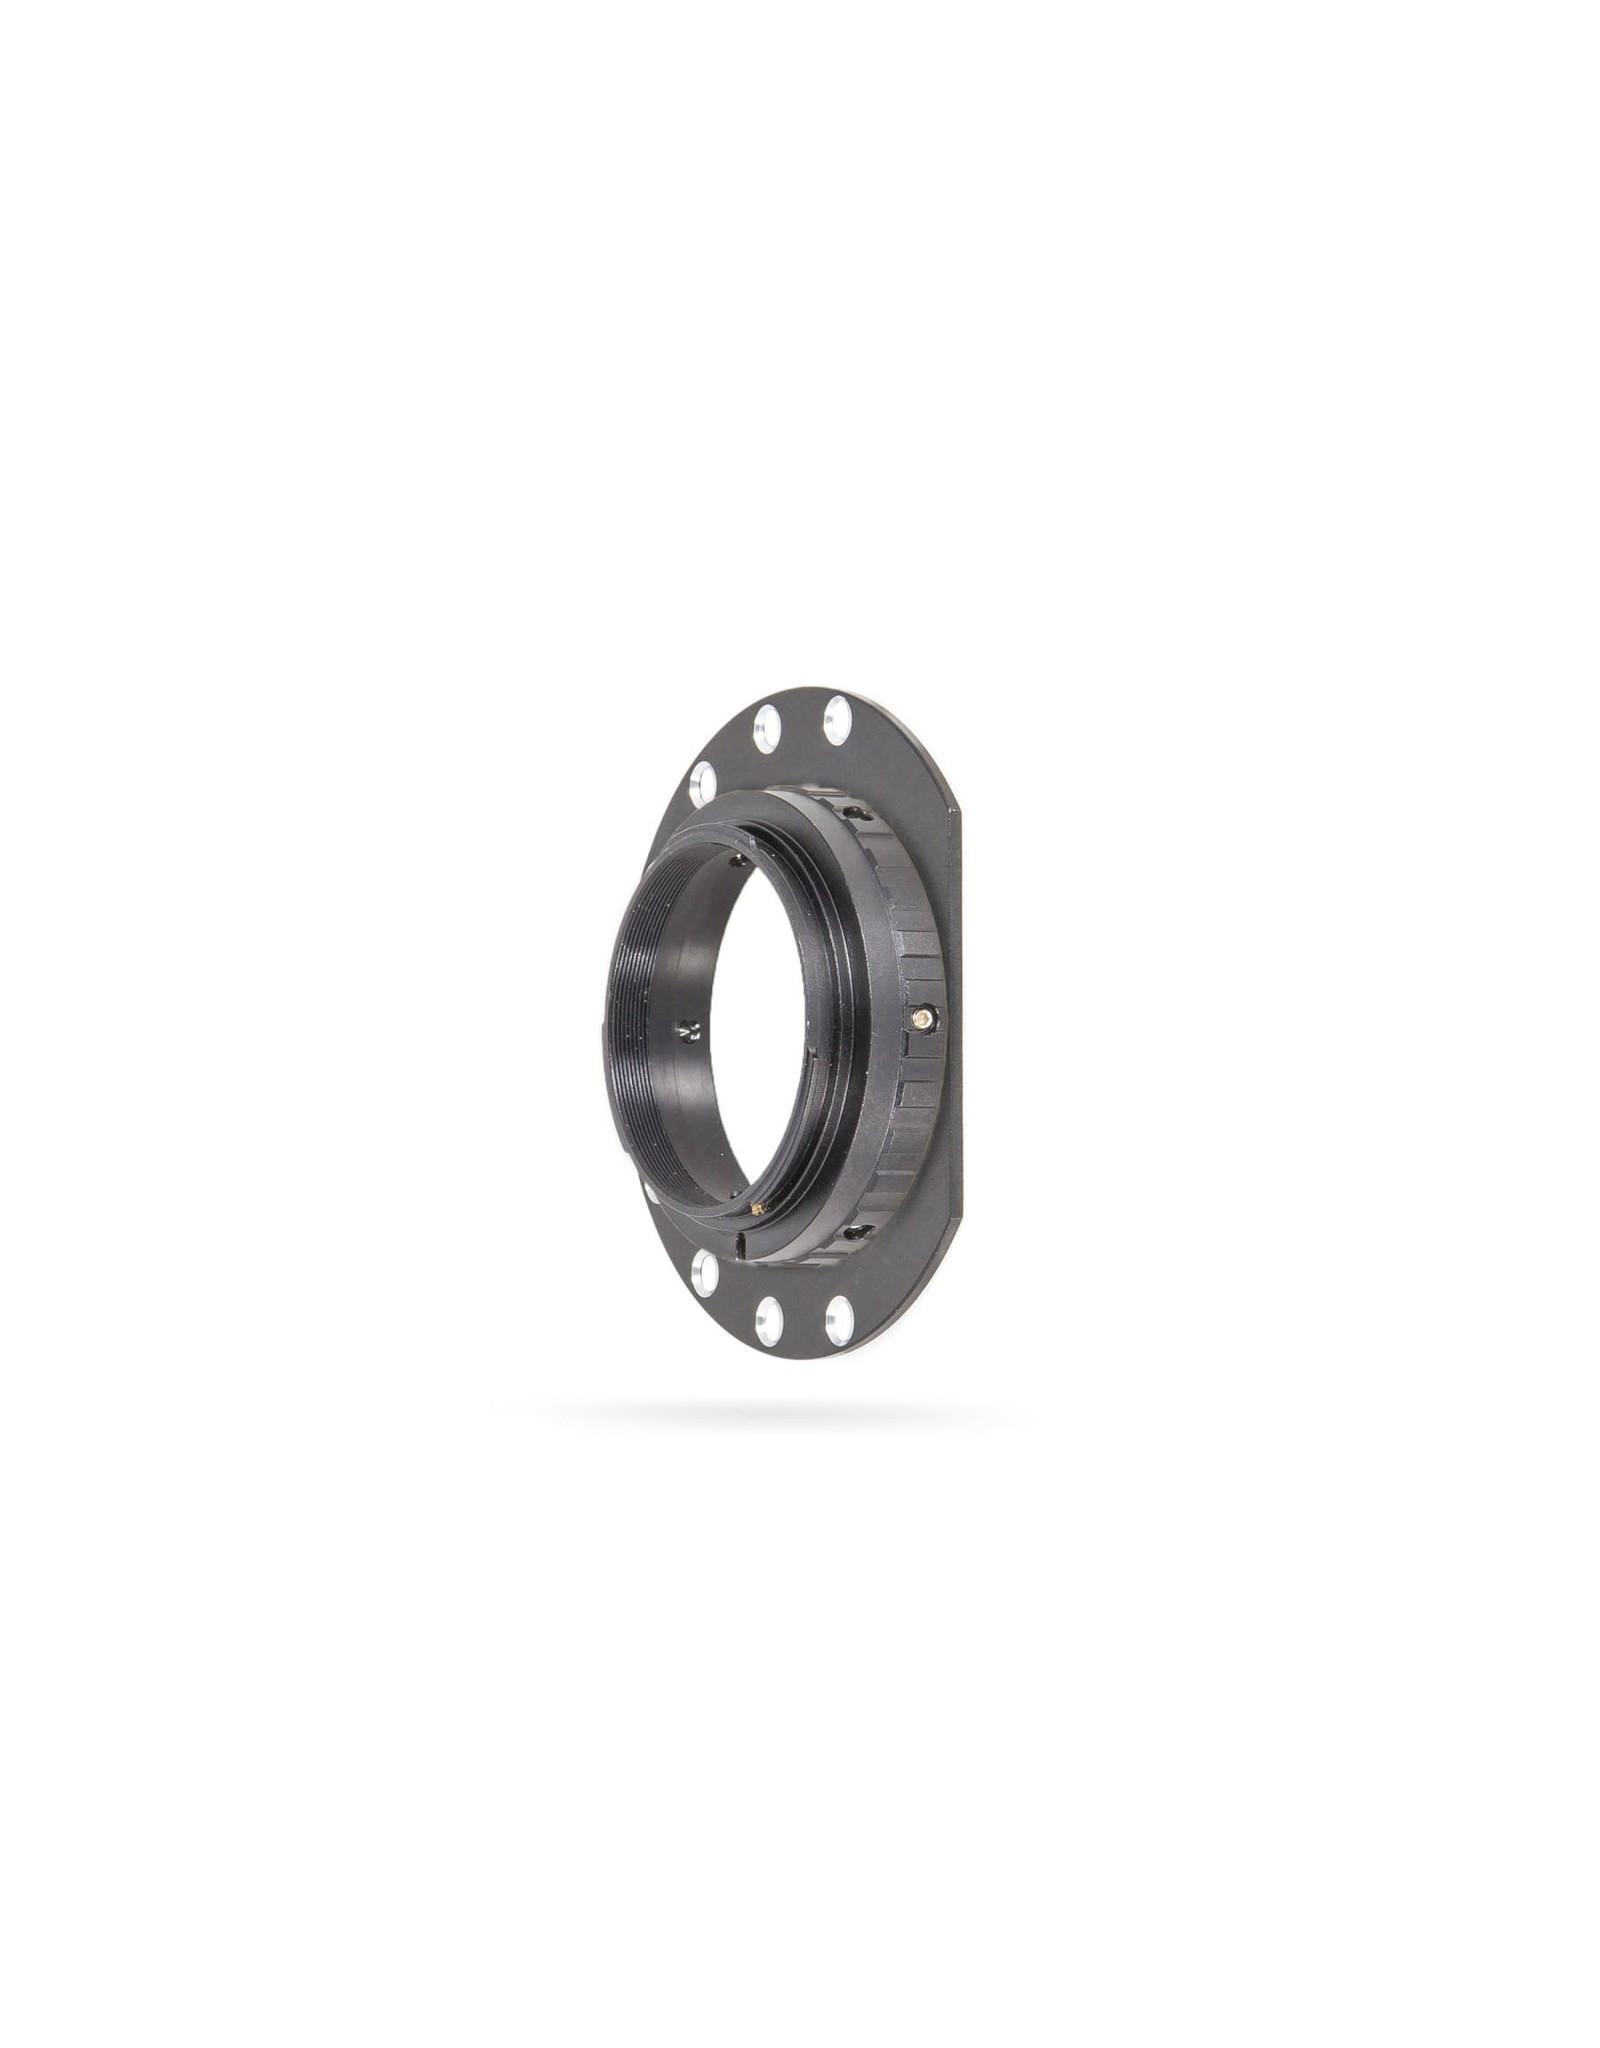 Baader Planetarium Baader S52 dovetail Camera-Adapter for Wide-T-rings (optical height: 2 mm)